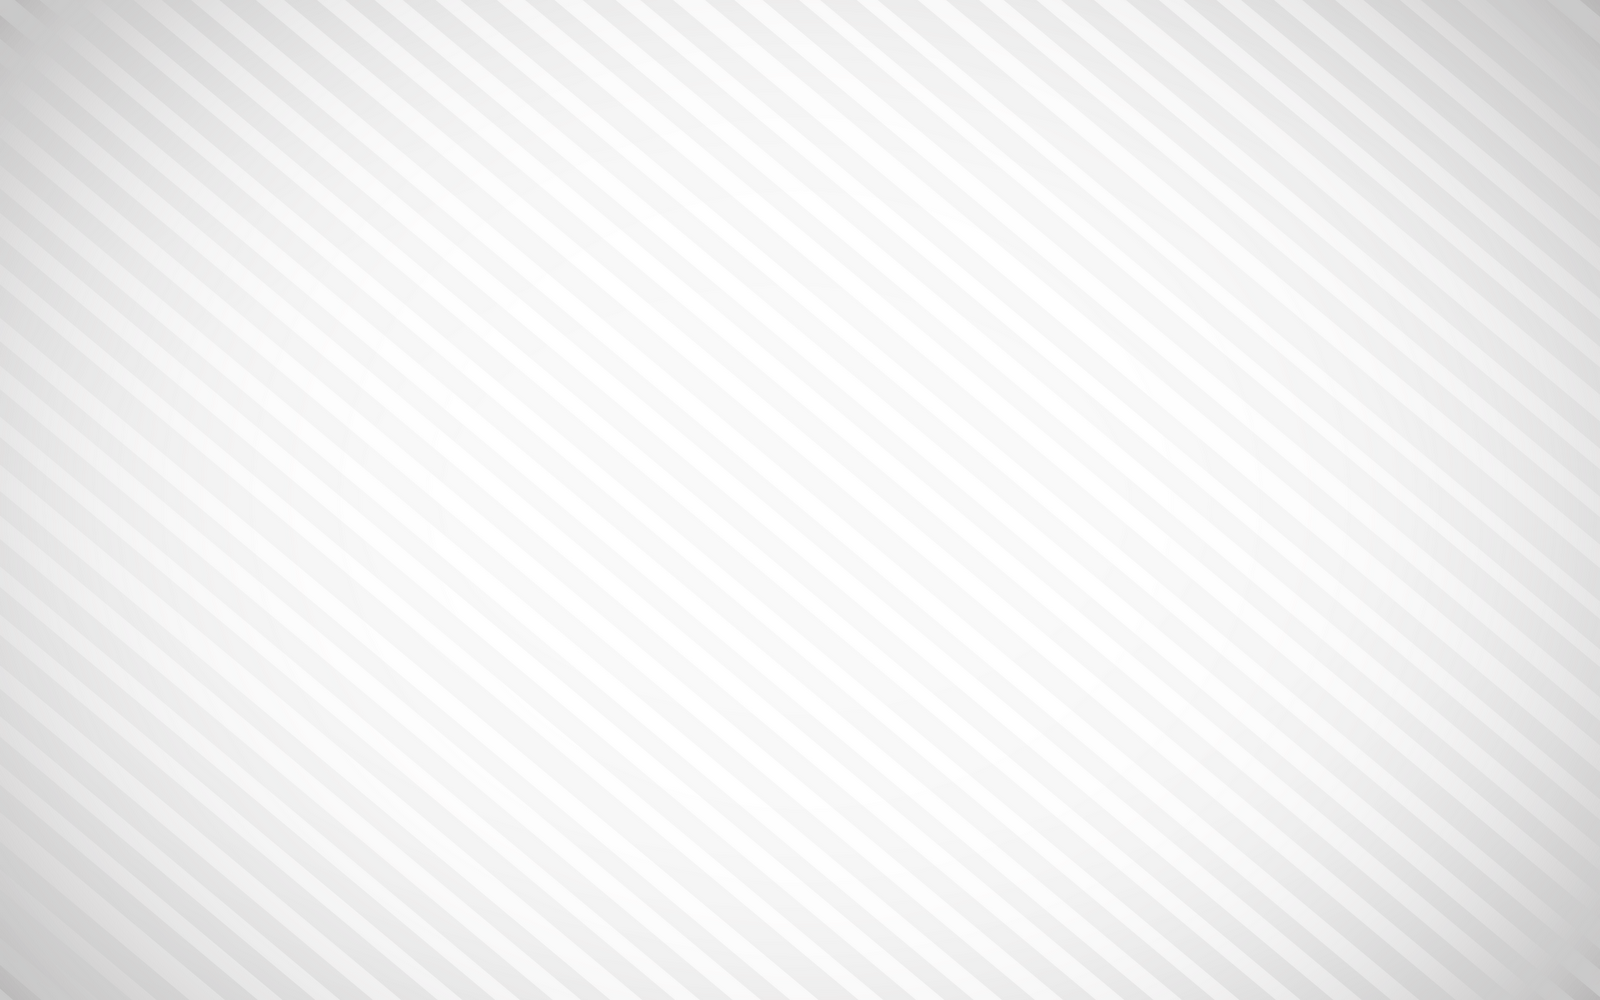 White Abstract Wallpaper Hq Pictures 13 HD Wallpapers | lzamgs.